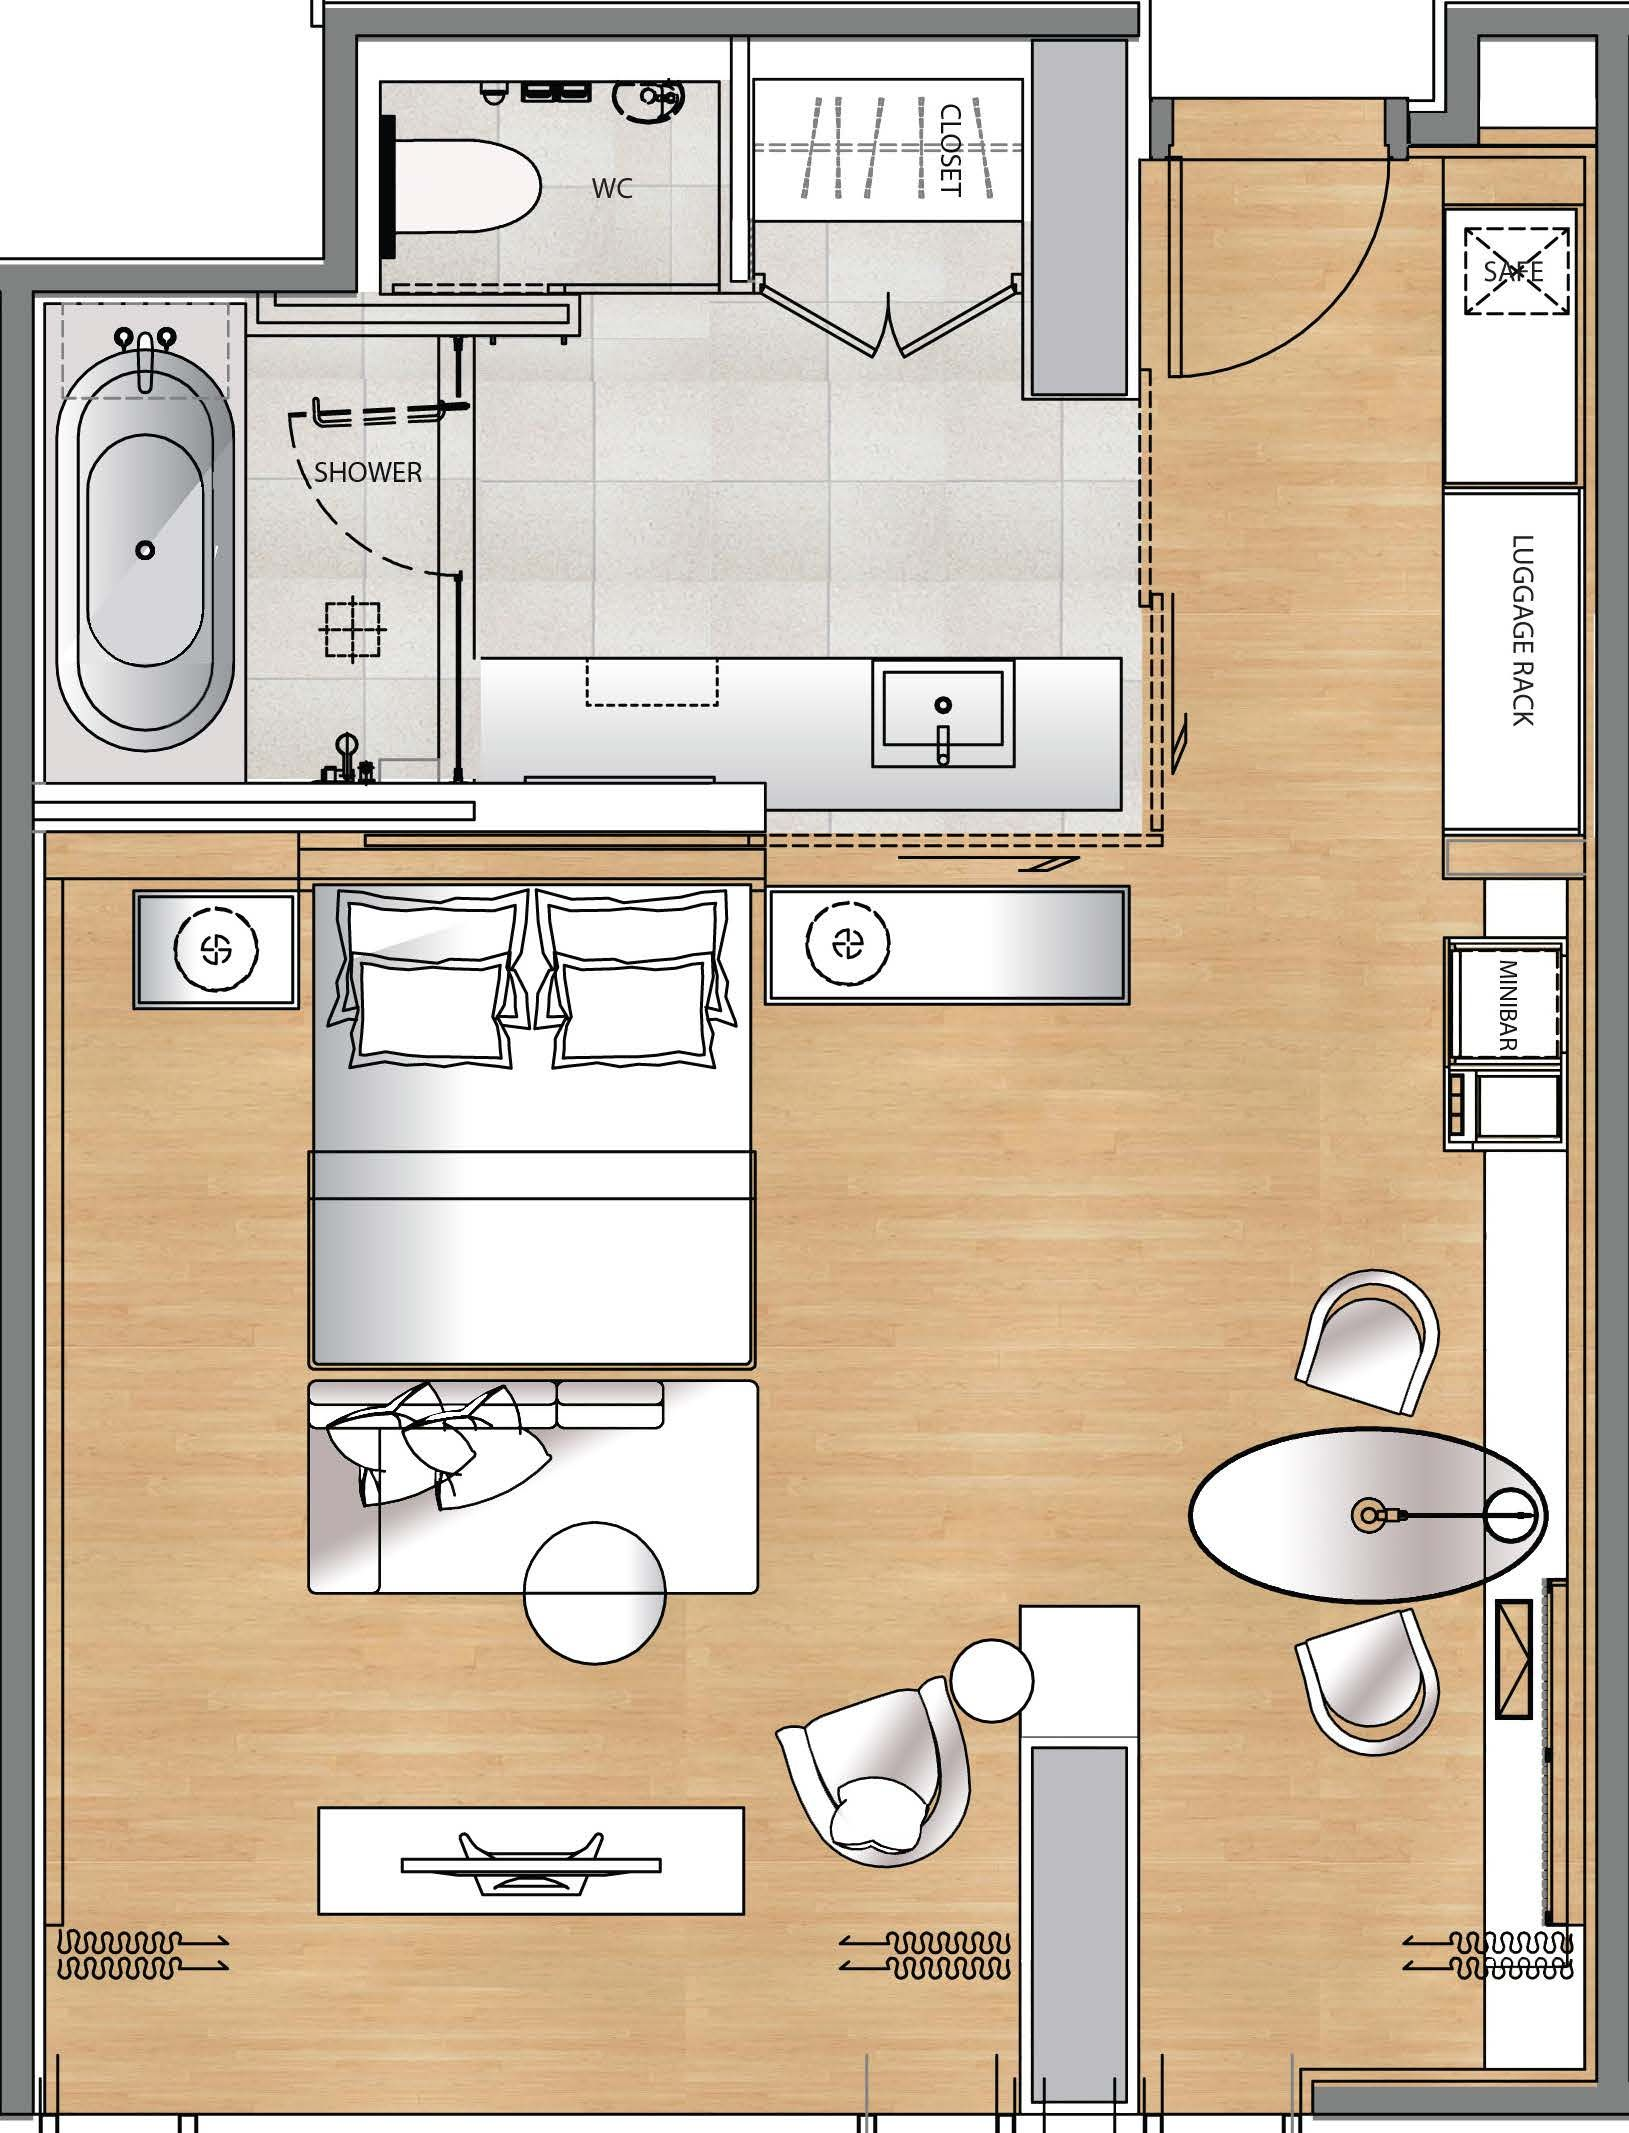 Hotel gym floor plan google search hotel rooms for Best room planner